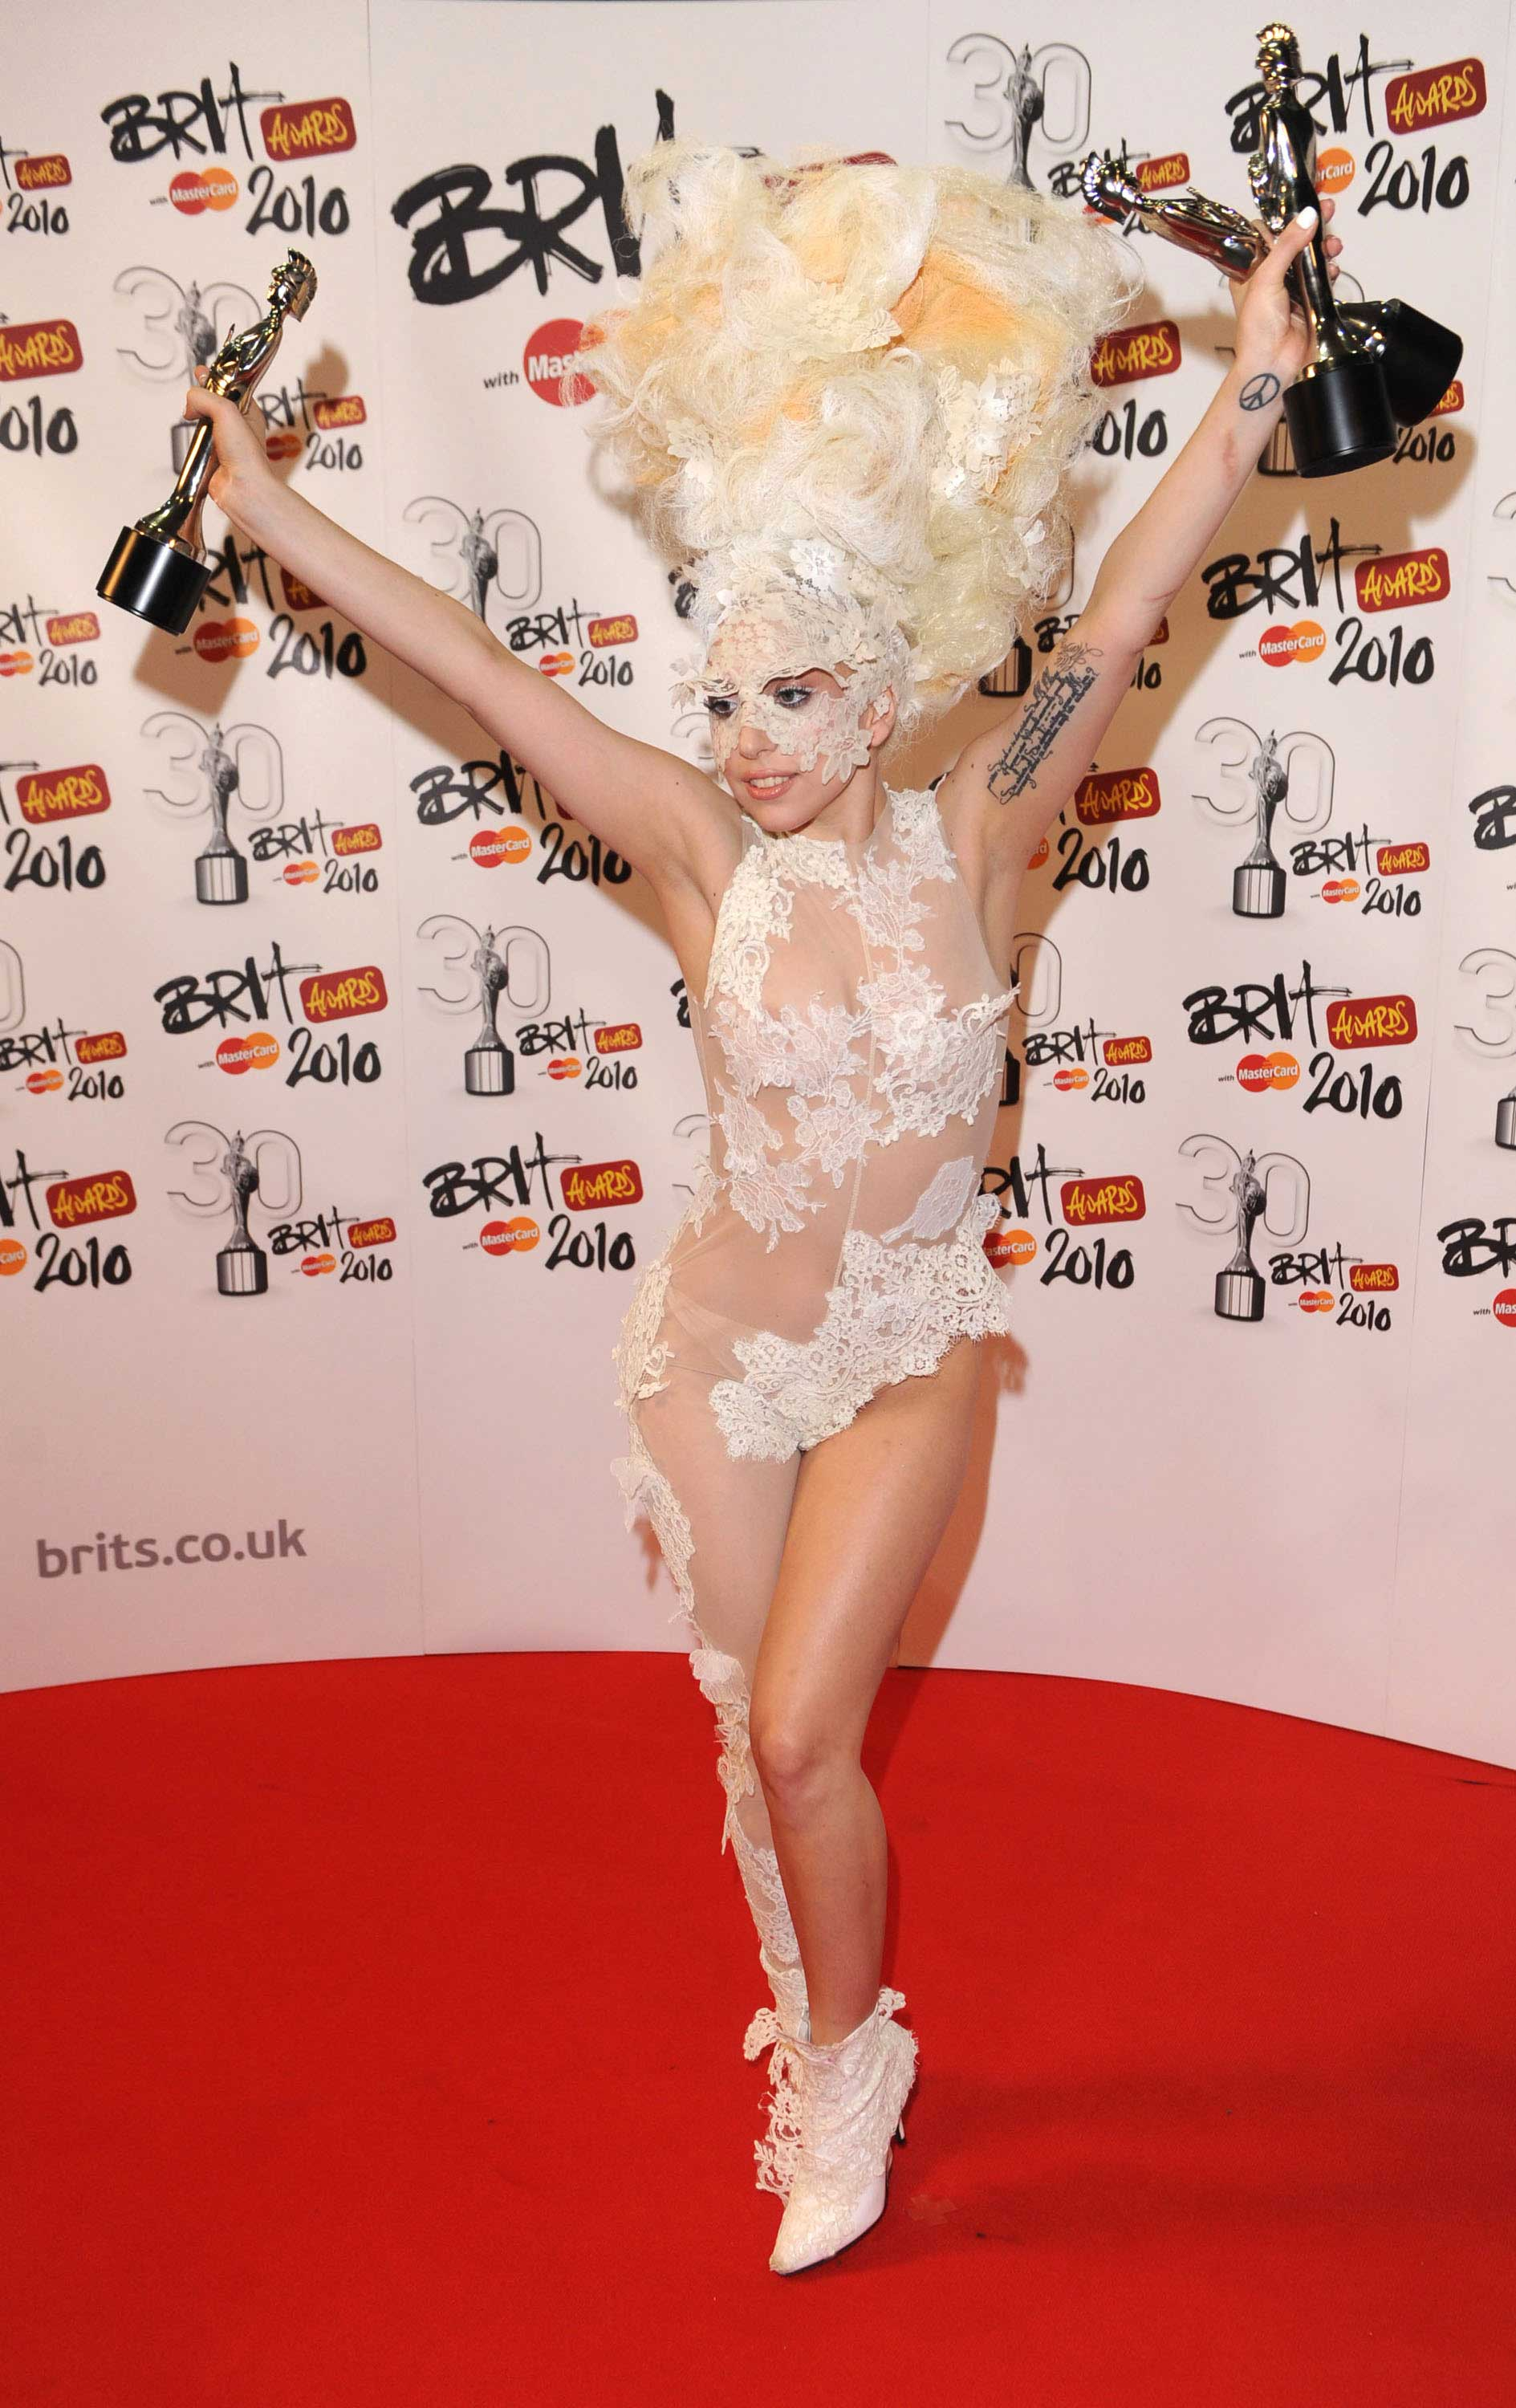 Lady Gaga wears Alex's lace body suit, shoes and veiling cloak at the Brit Awards 2010.